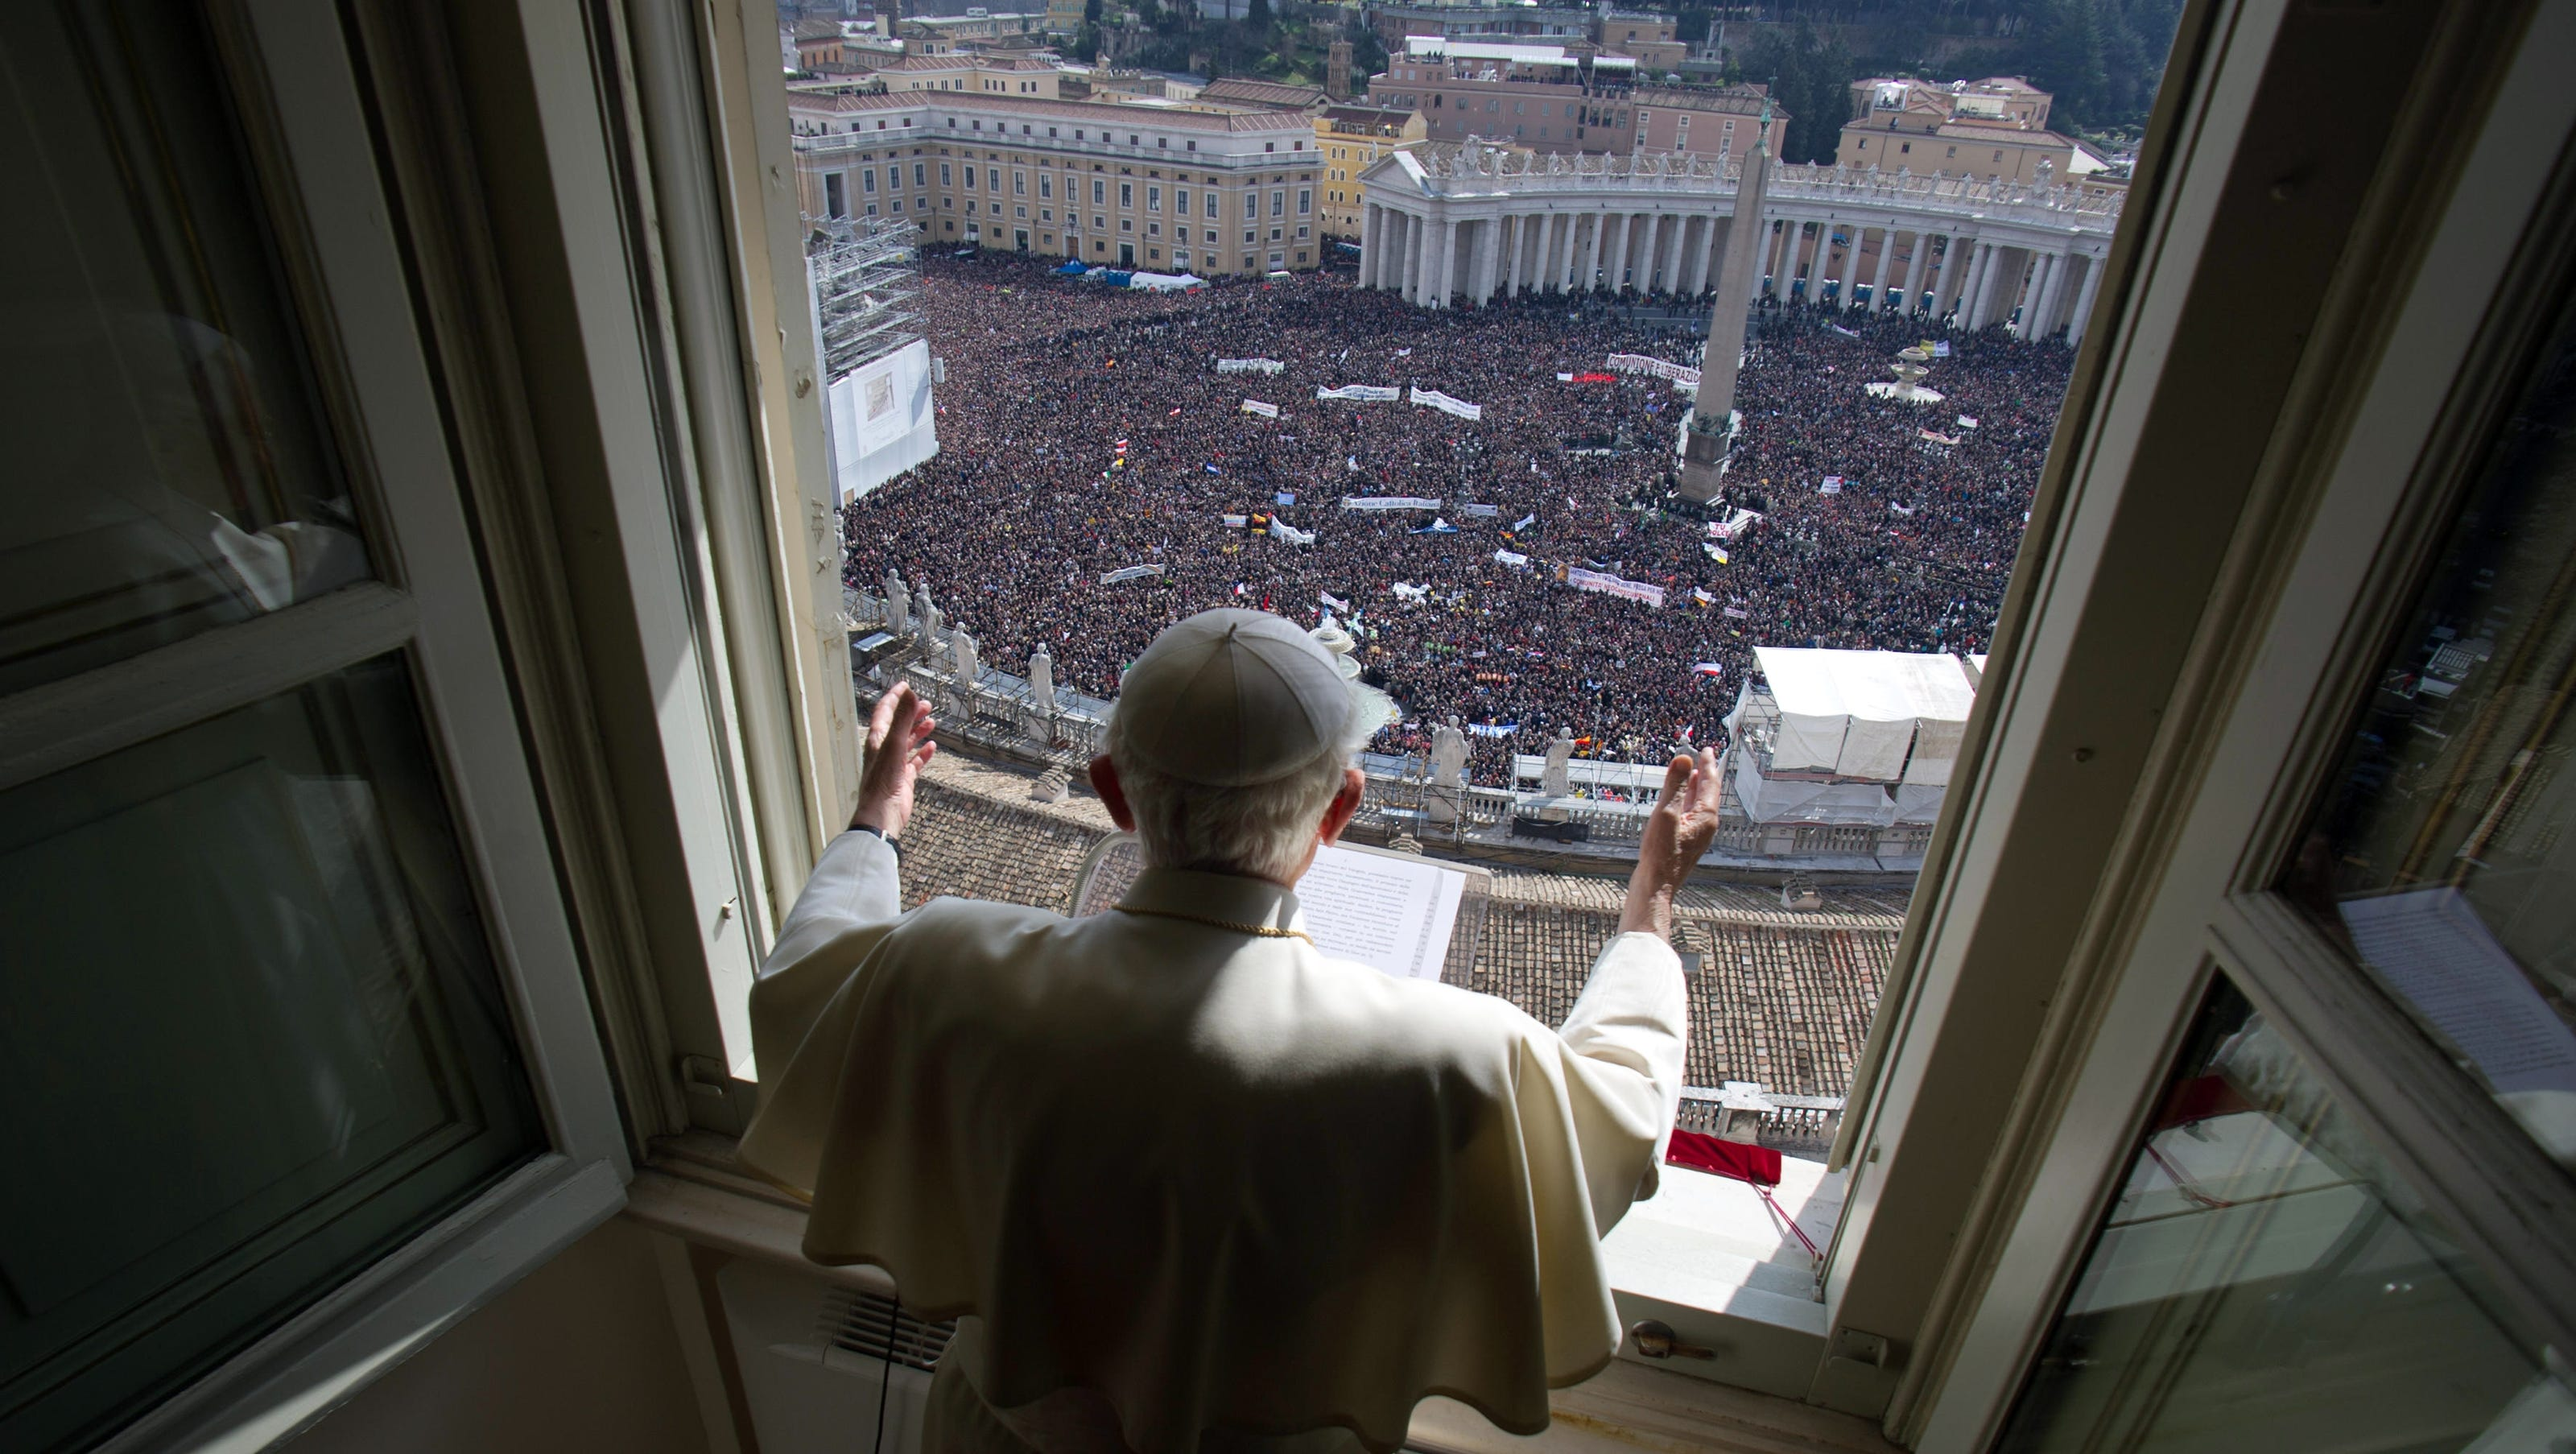 Pope's last Sunday blessing draws crowd at Vatican